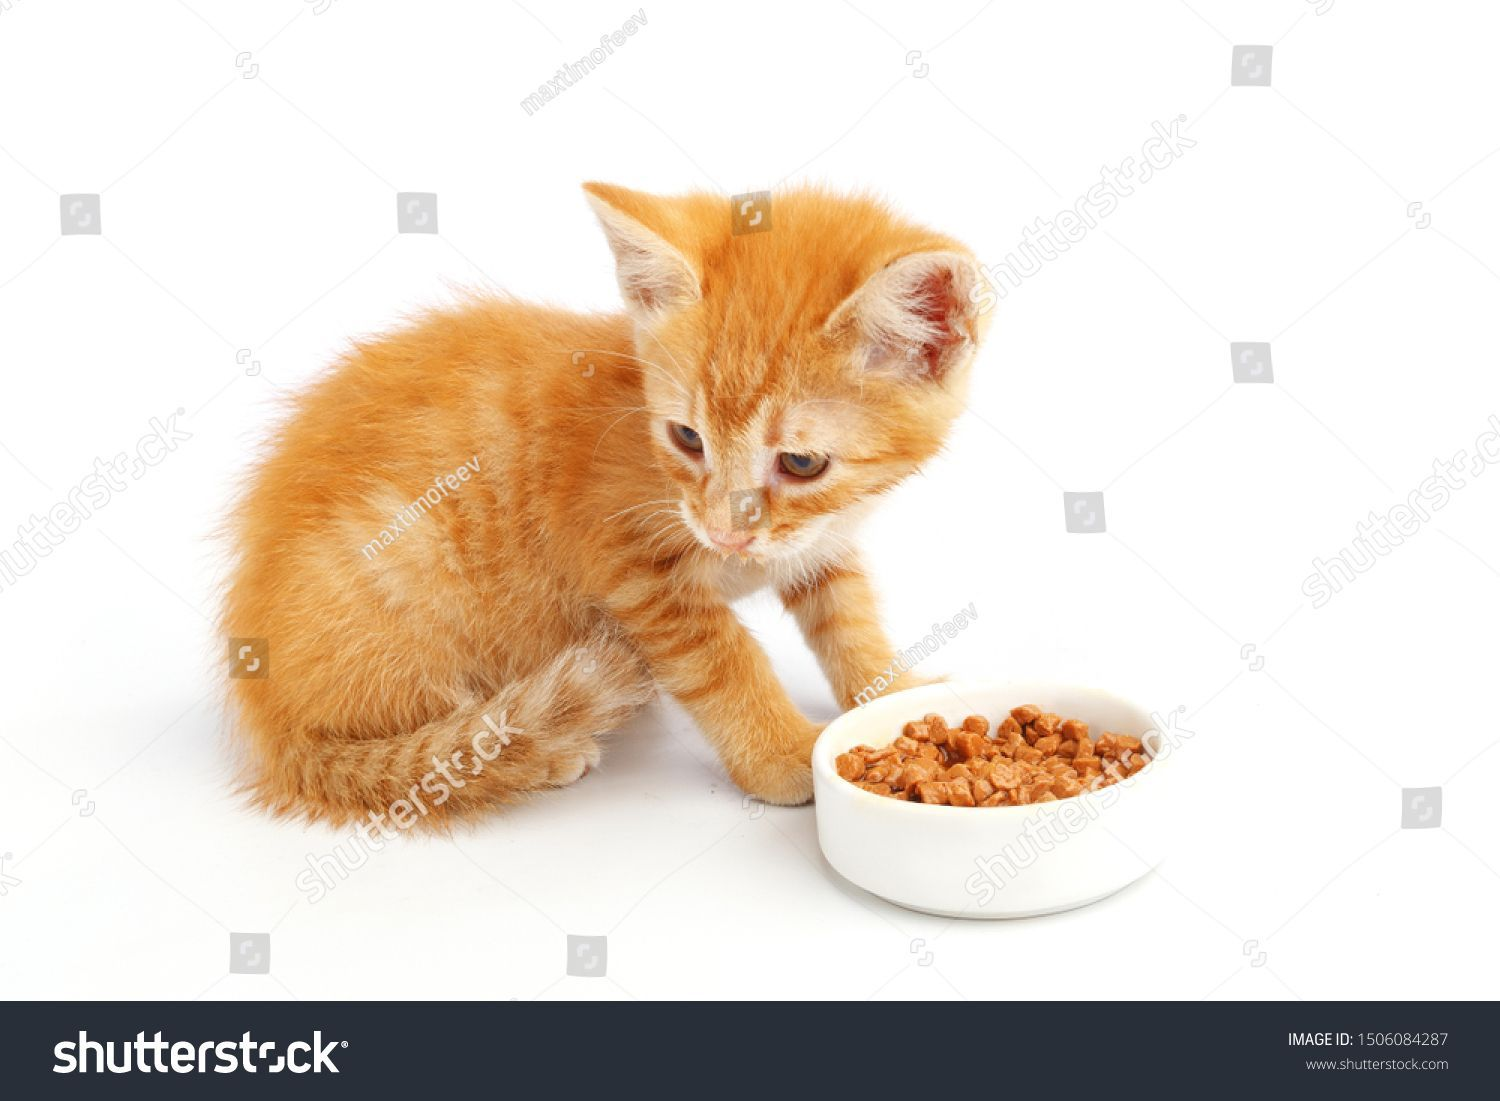 Little ginger kitten eats cat food from a bowl. #Sponsored , #AD, #eats#kitten#ginger#bowl #gingerkitten Little ginger kitten eats cat food from a bowl. #Sponsored , #AD, #eats#kitten#ginger#bowl #gingerkitten